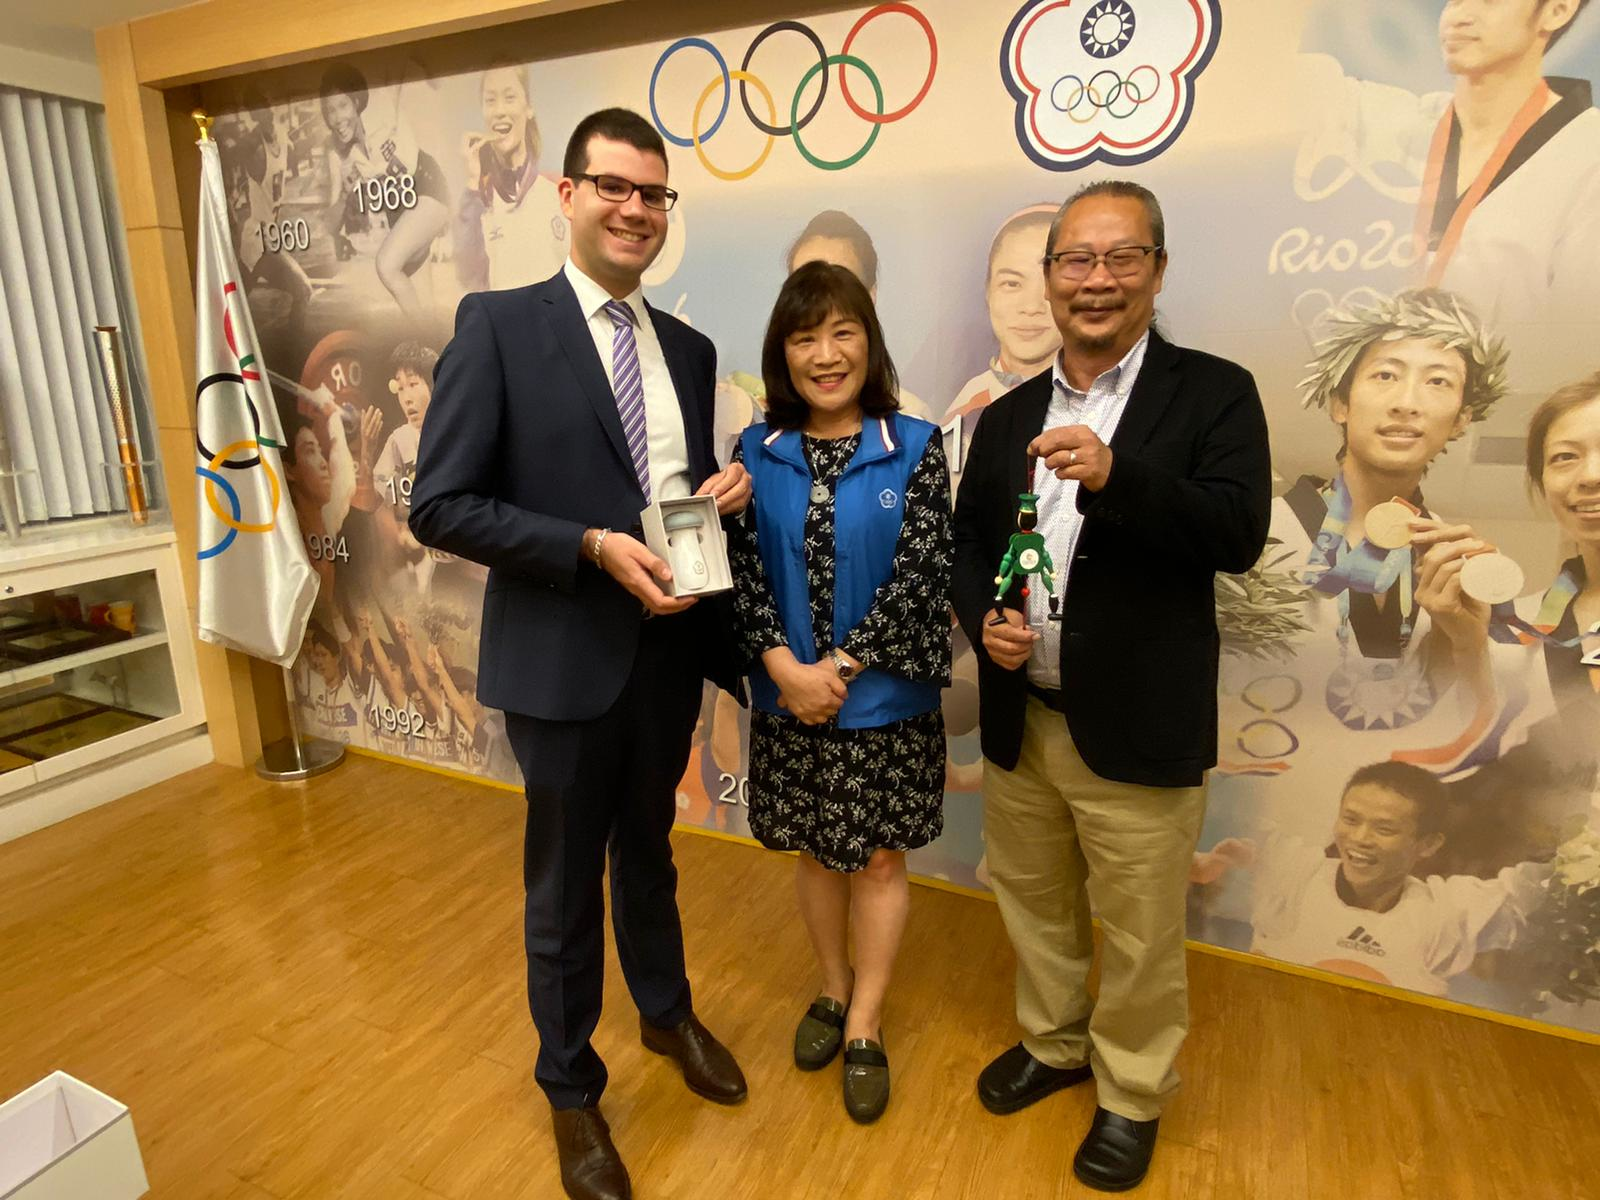 TAFISA's Junior Director meeting with Chinese Taipei Olympic Committee's Secretary General Frances Yuh-Fang Wang Lee and Advisor Hank Jwo.